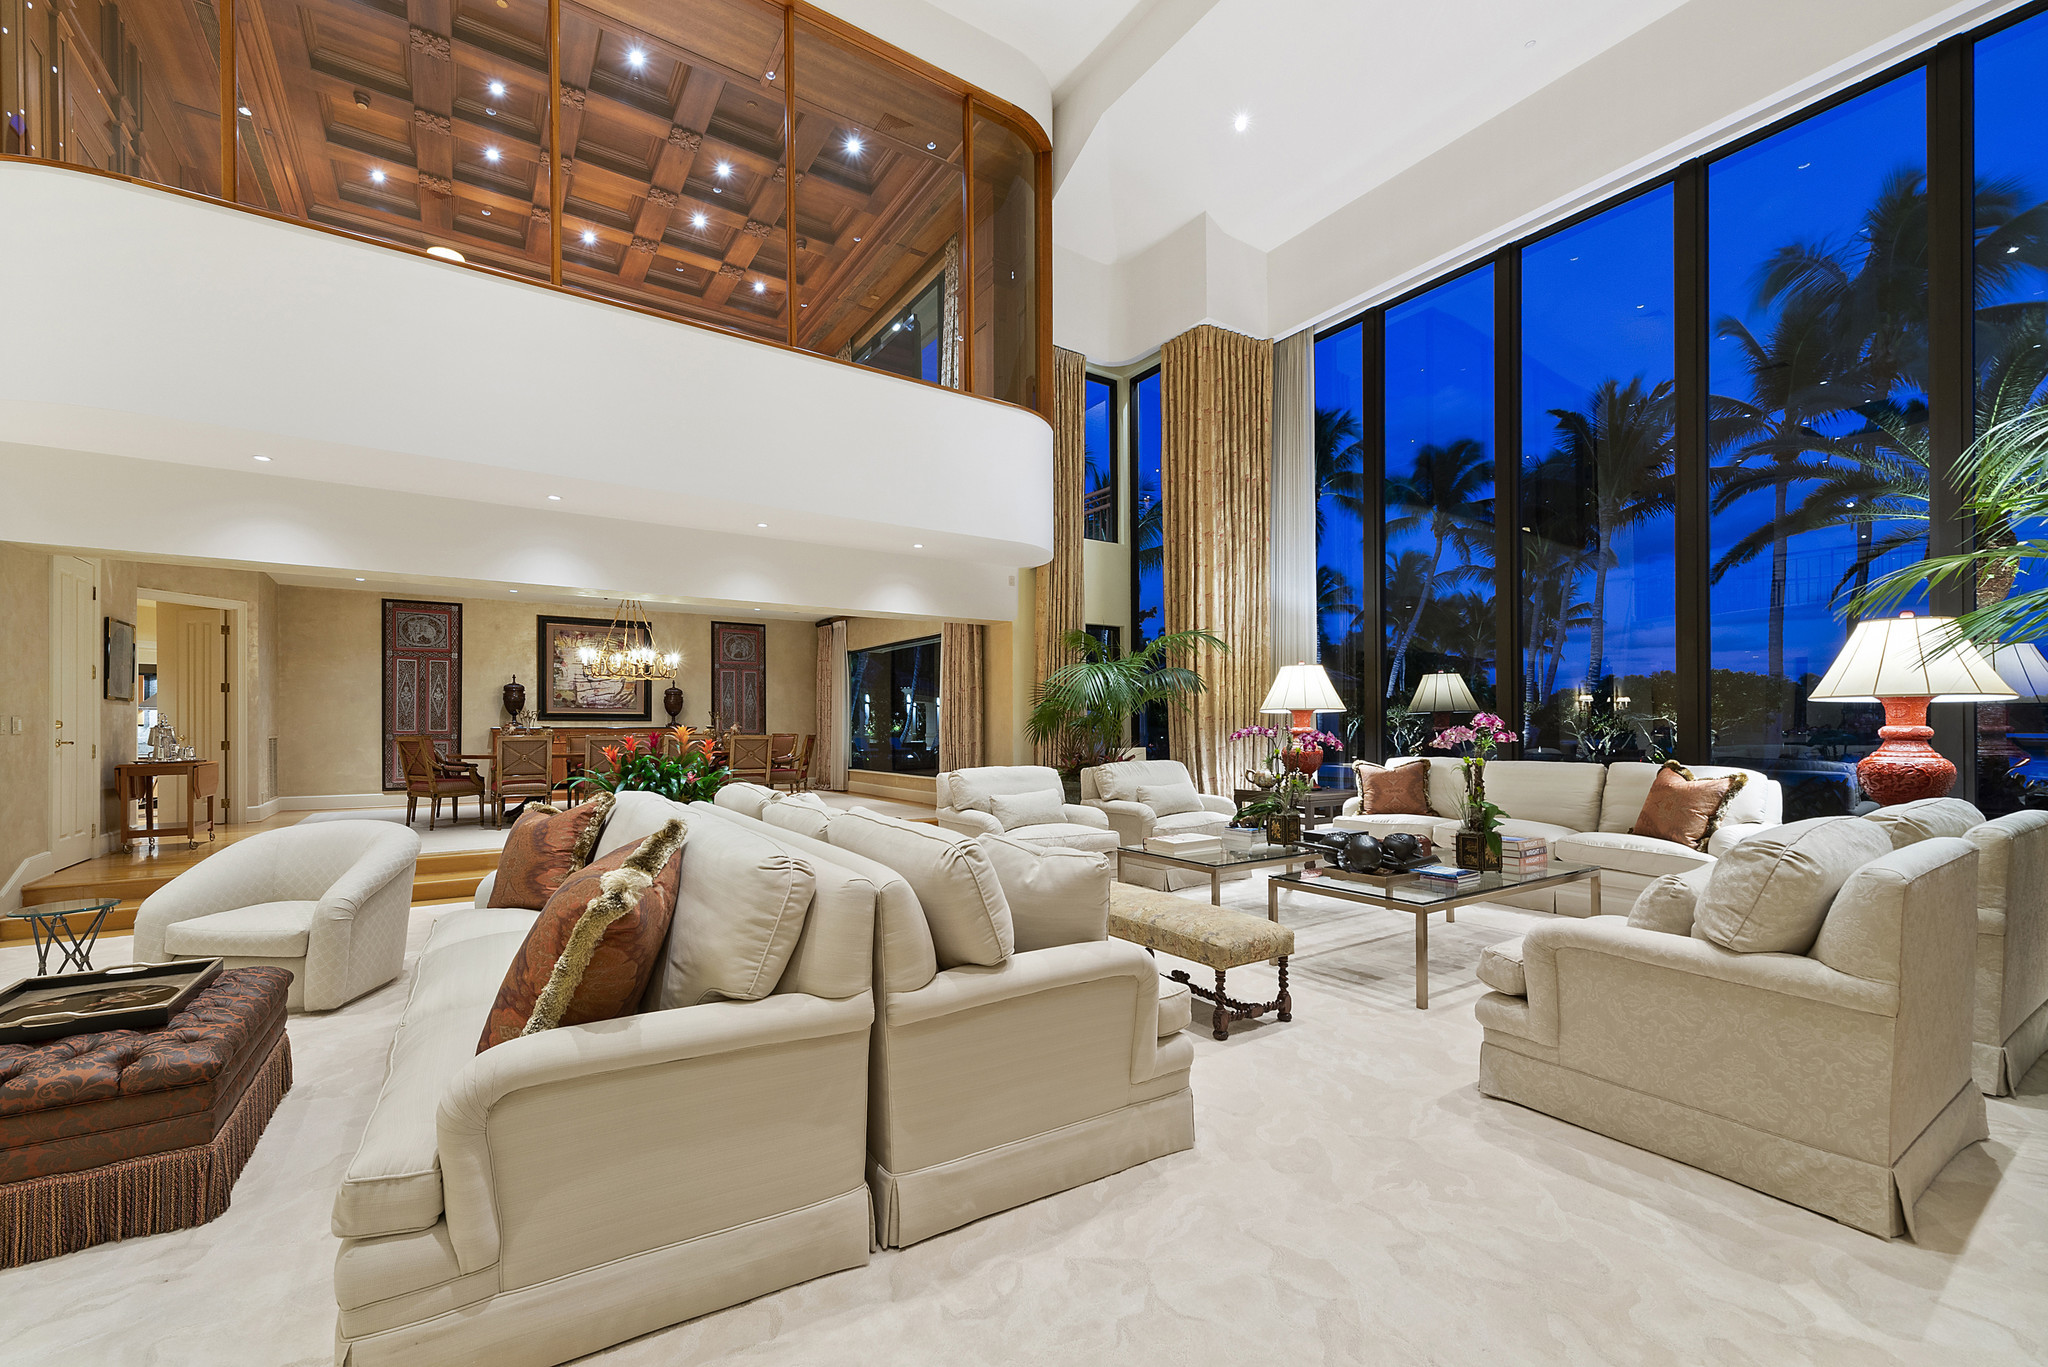 Red Sox owner John W. Henry is seeking $25 million for his 27,832-square-foot mansion in Boca Raton,